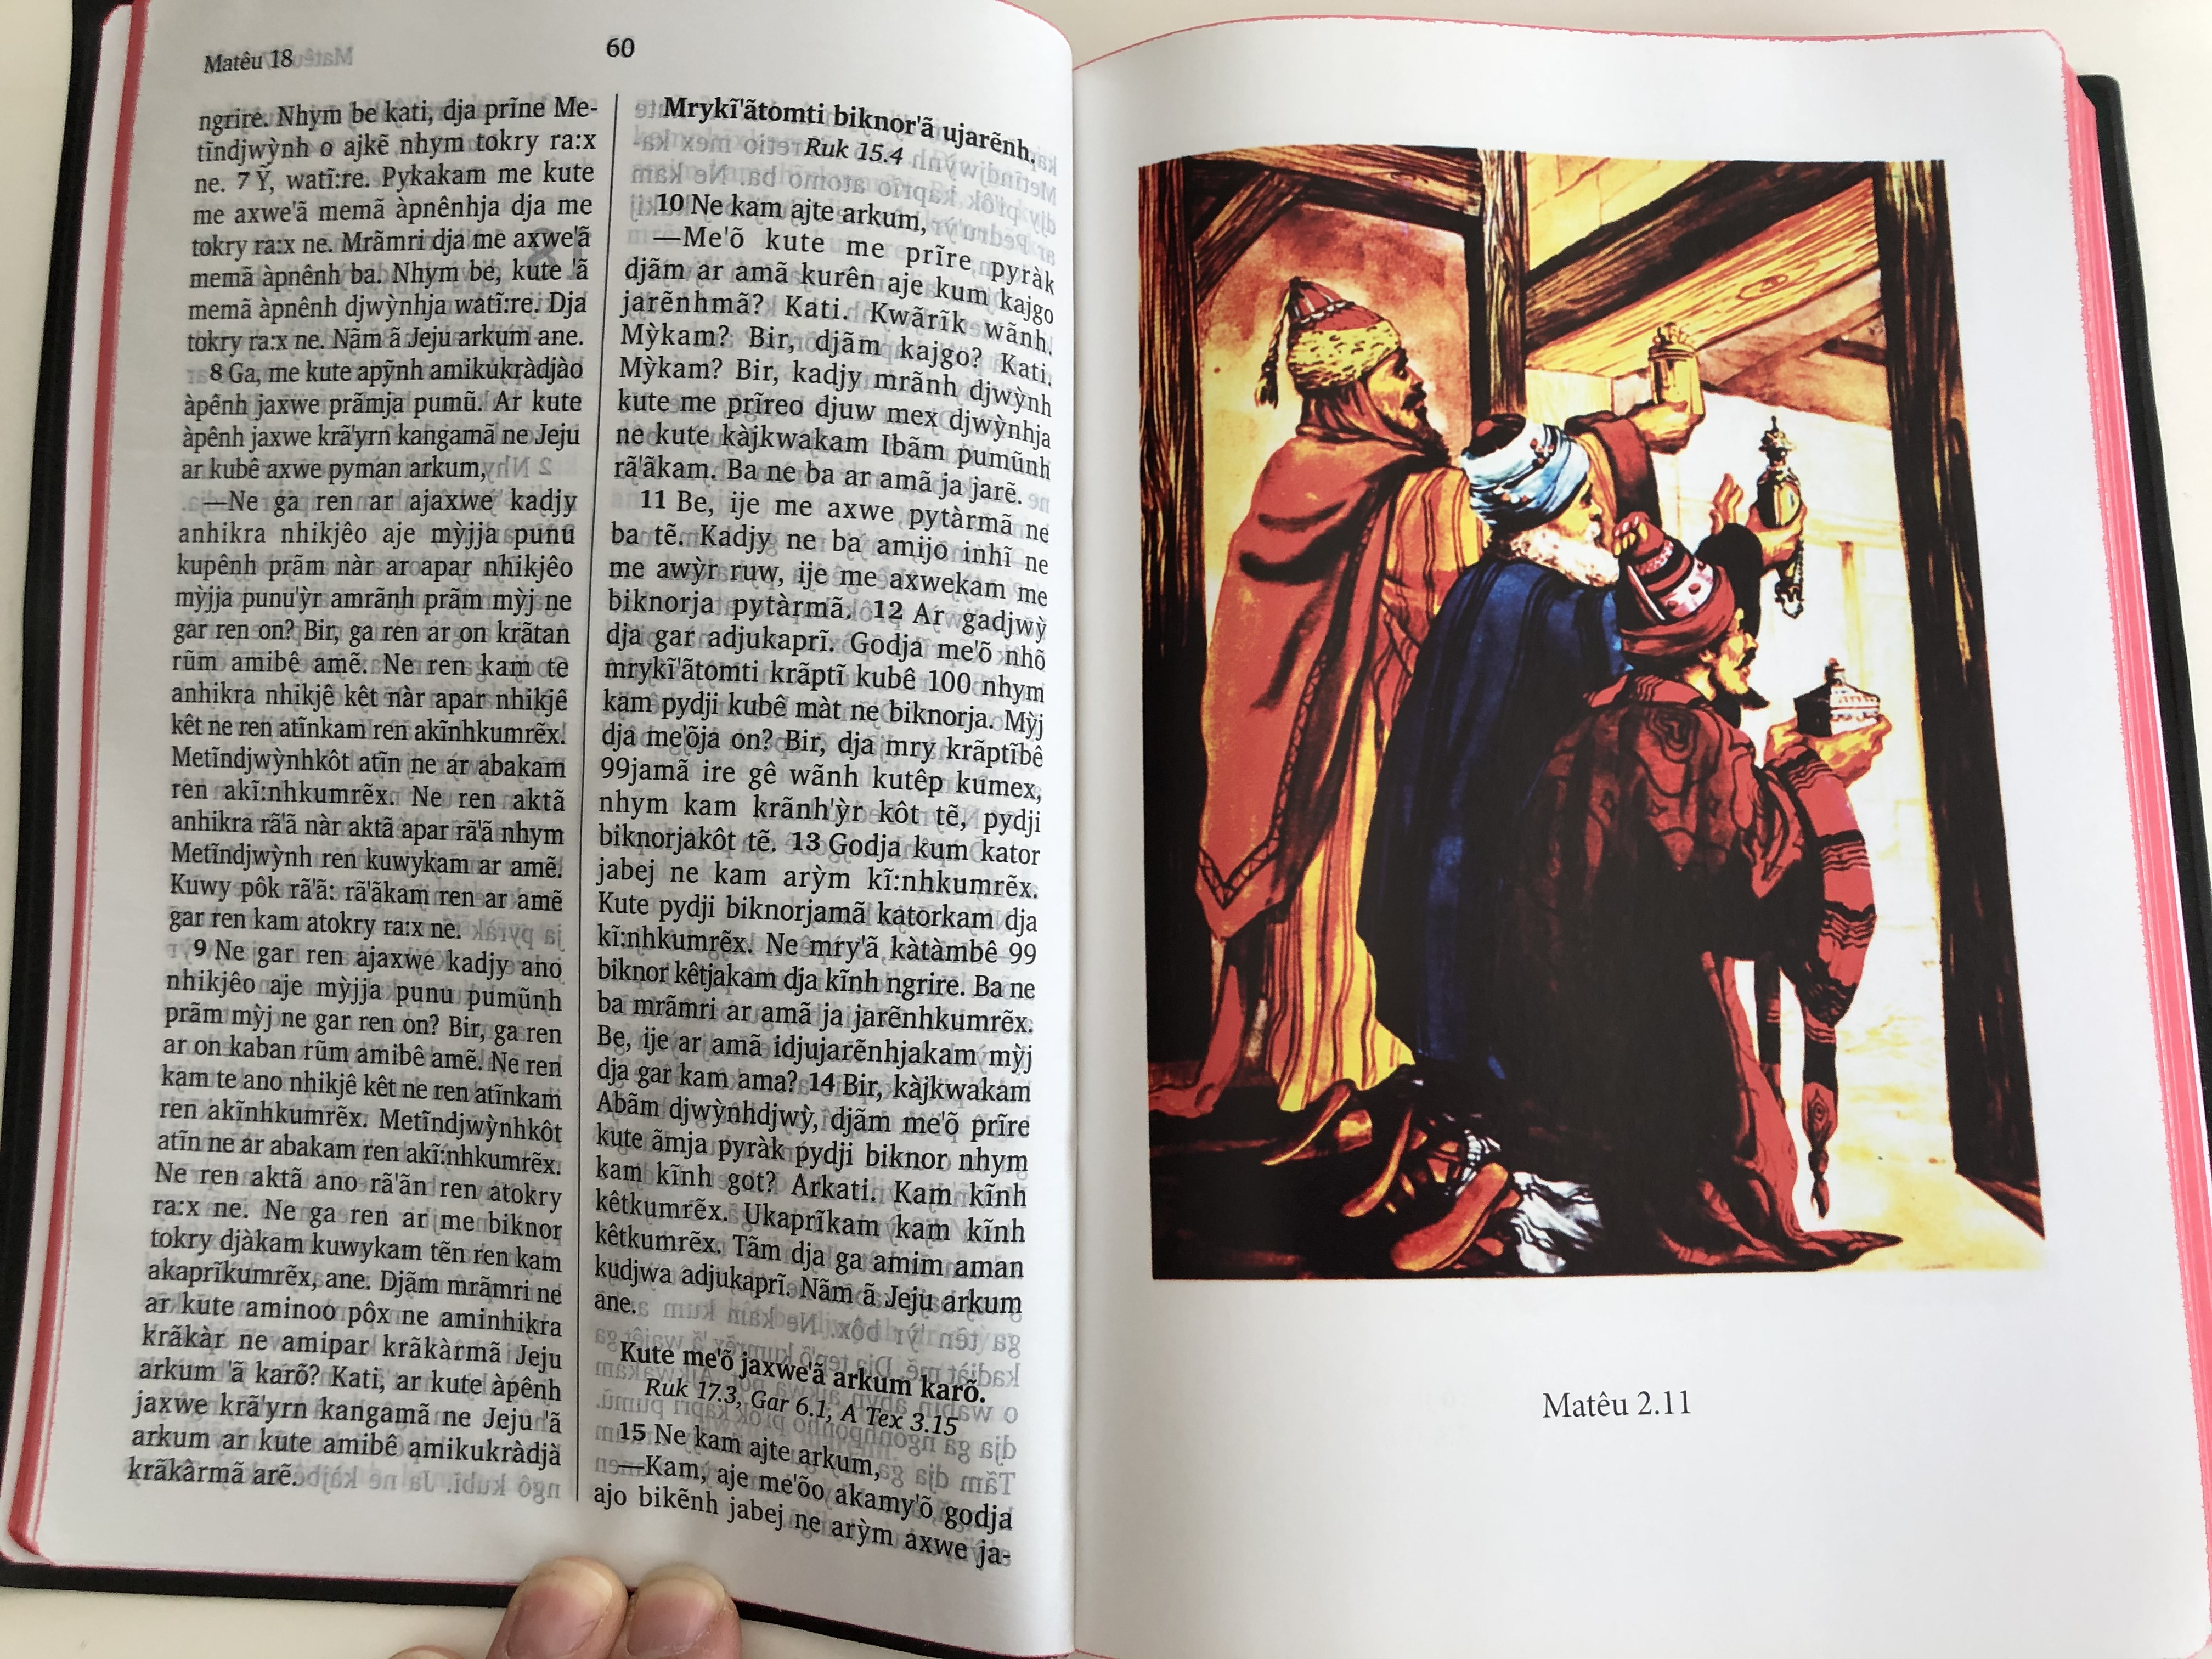 met-ndjw-nh-kute-mem-kab-n-ny-jar-nh-o-novo-testamento-the-new-testament-in-kayap-language-bible-society-brasil-2015-vinyl-bound-red-page-edges-3rd-edition-with-illustrations-dictionary-6-.jpg